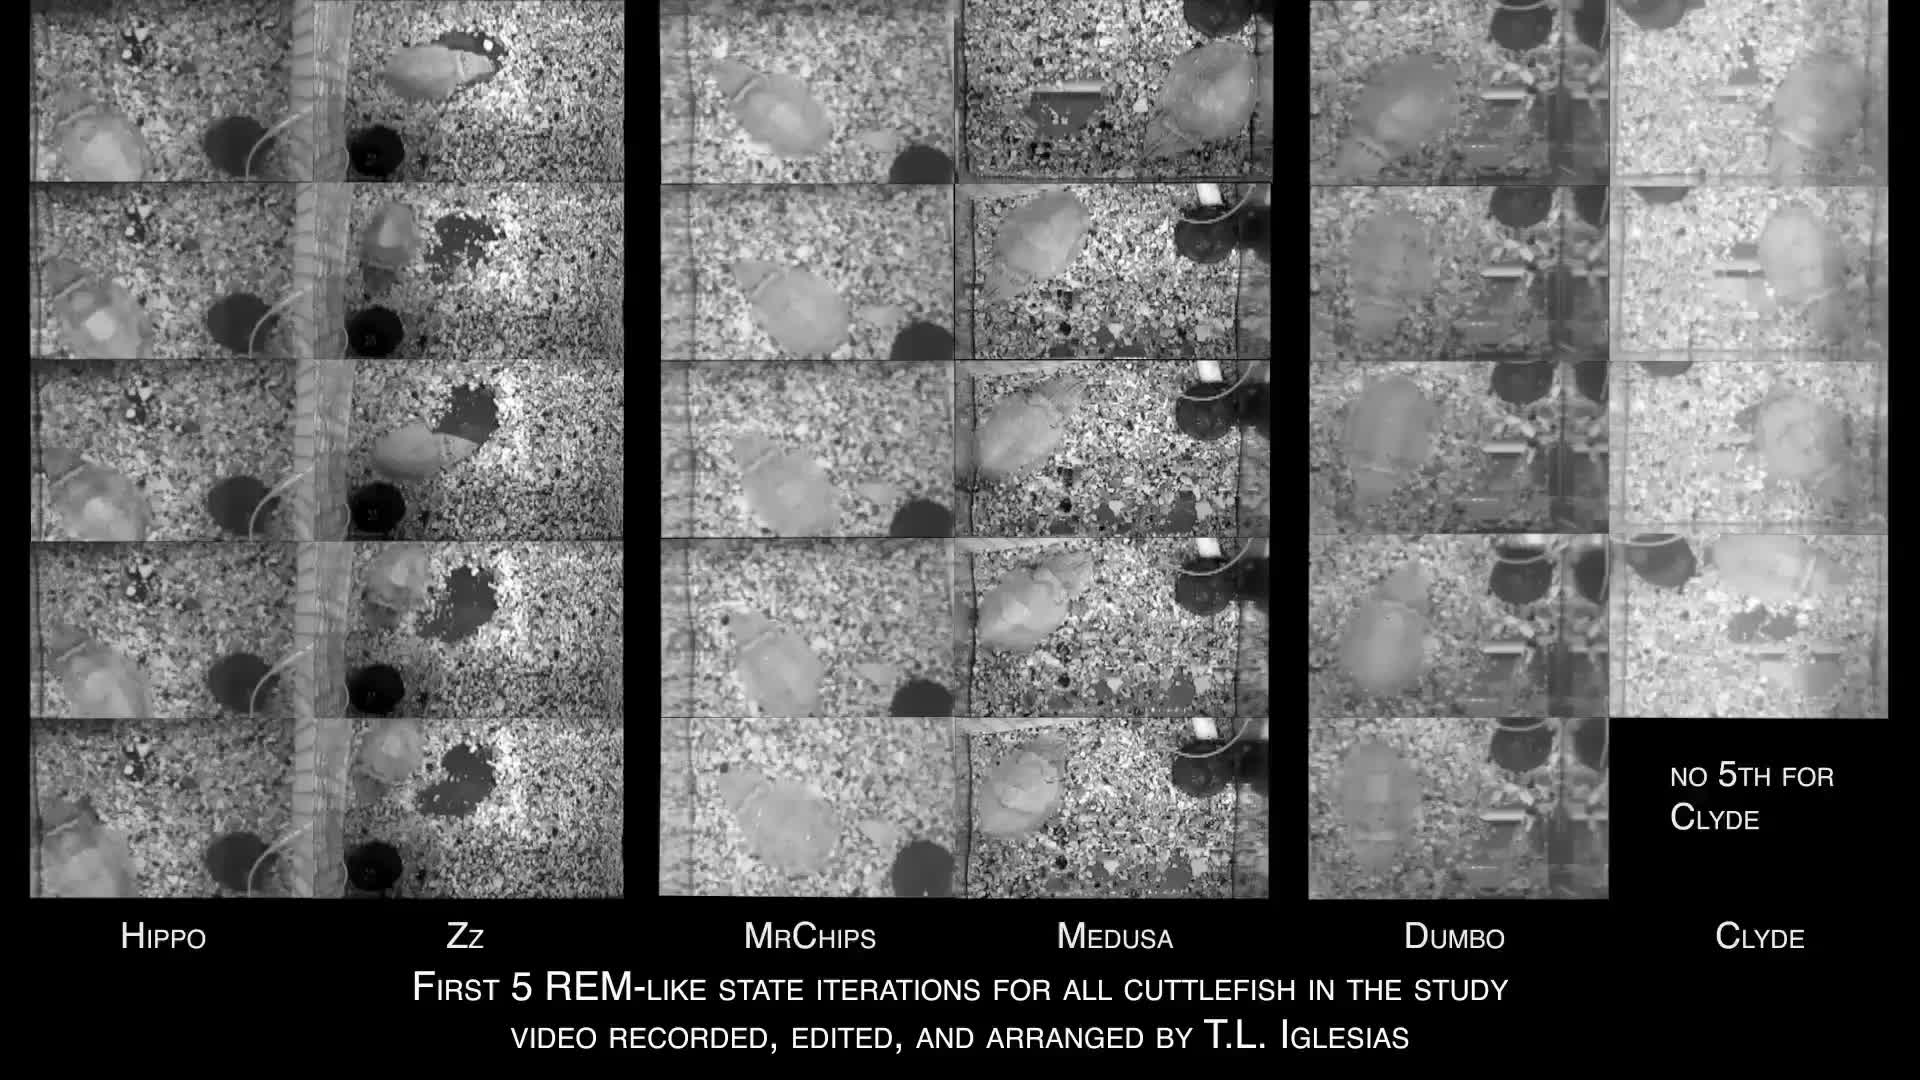 Cyclic nature of the REM sleep-like state in the cuttlefish Sepia